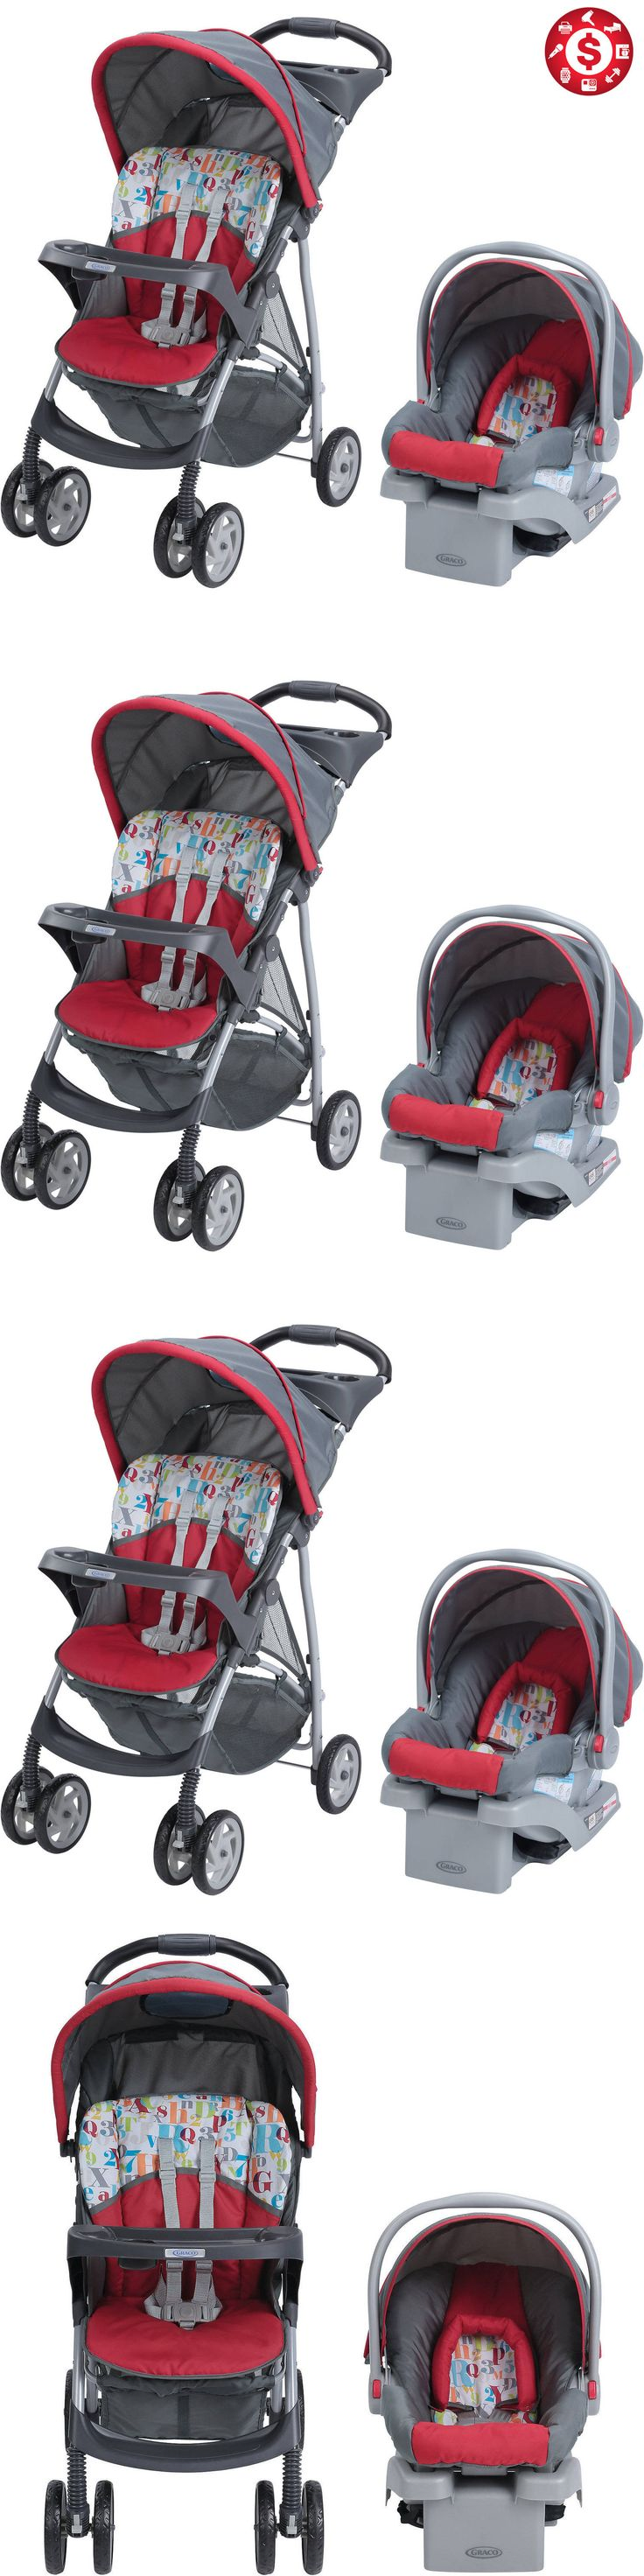 baby kid stuff: Baby Stroller And Car Seat 3In1 Travel System 22 Infant Carriage Buggy Bassinet -> BUY IT NOW ONLY: $100.71 on eBay!